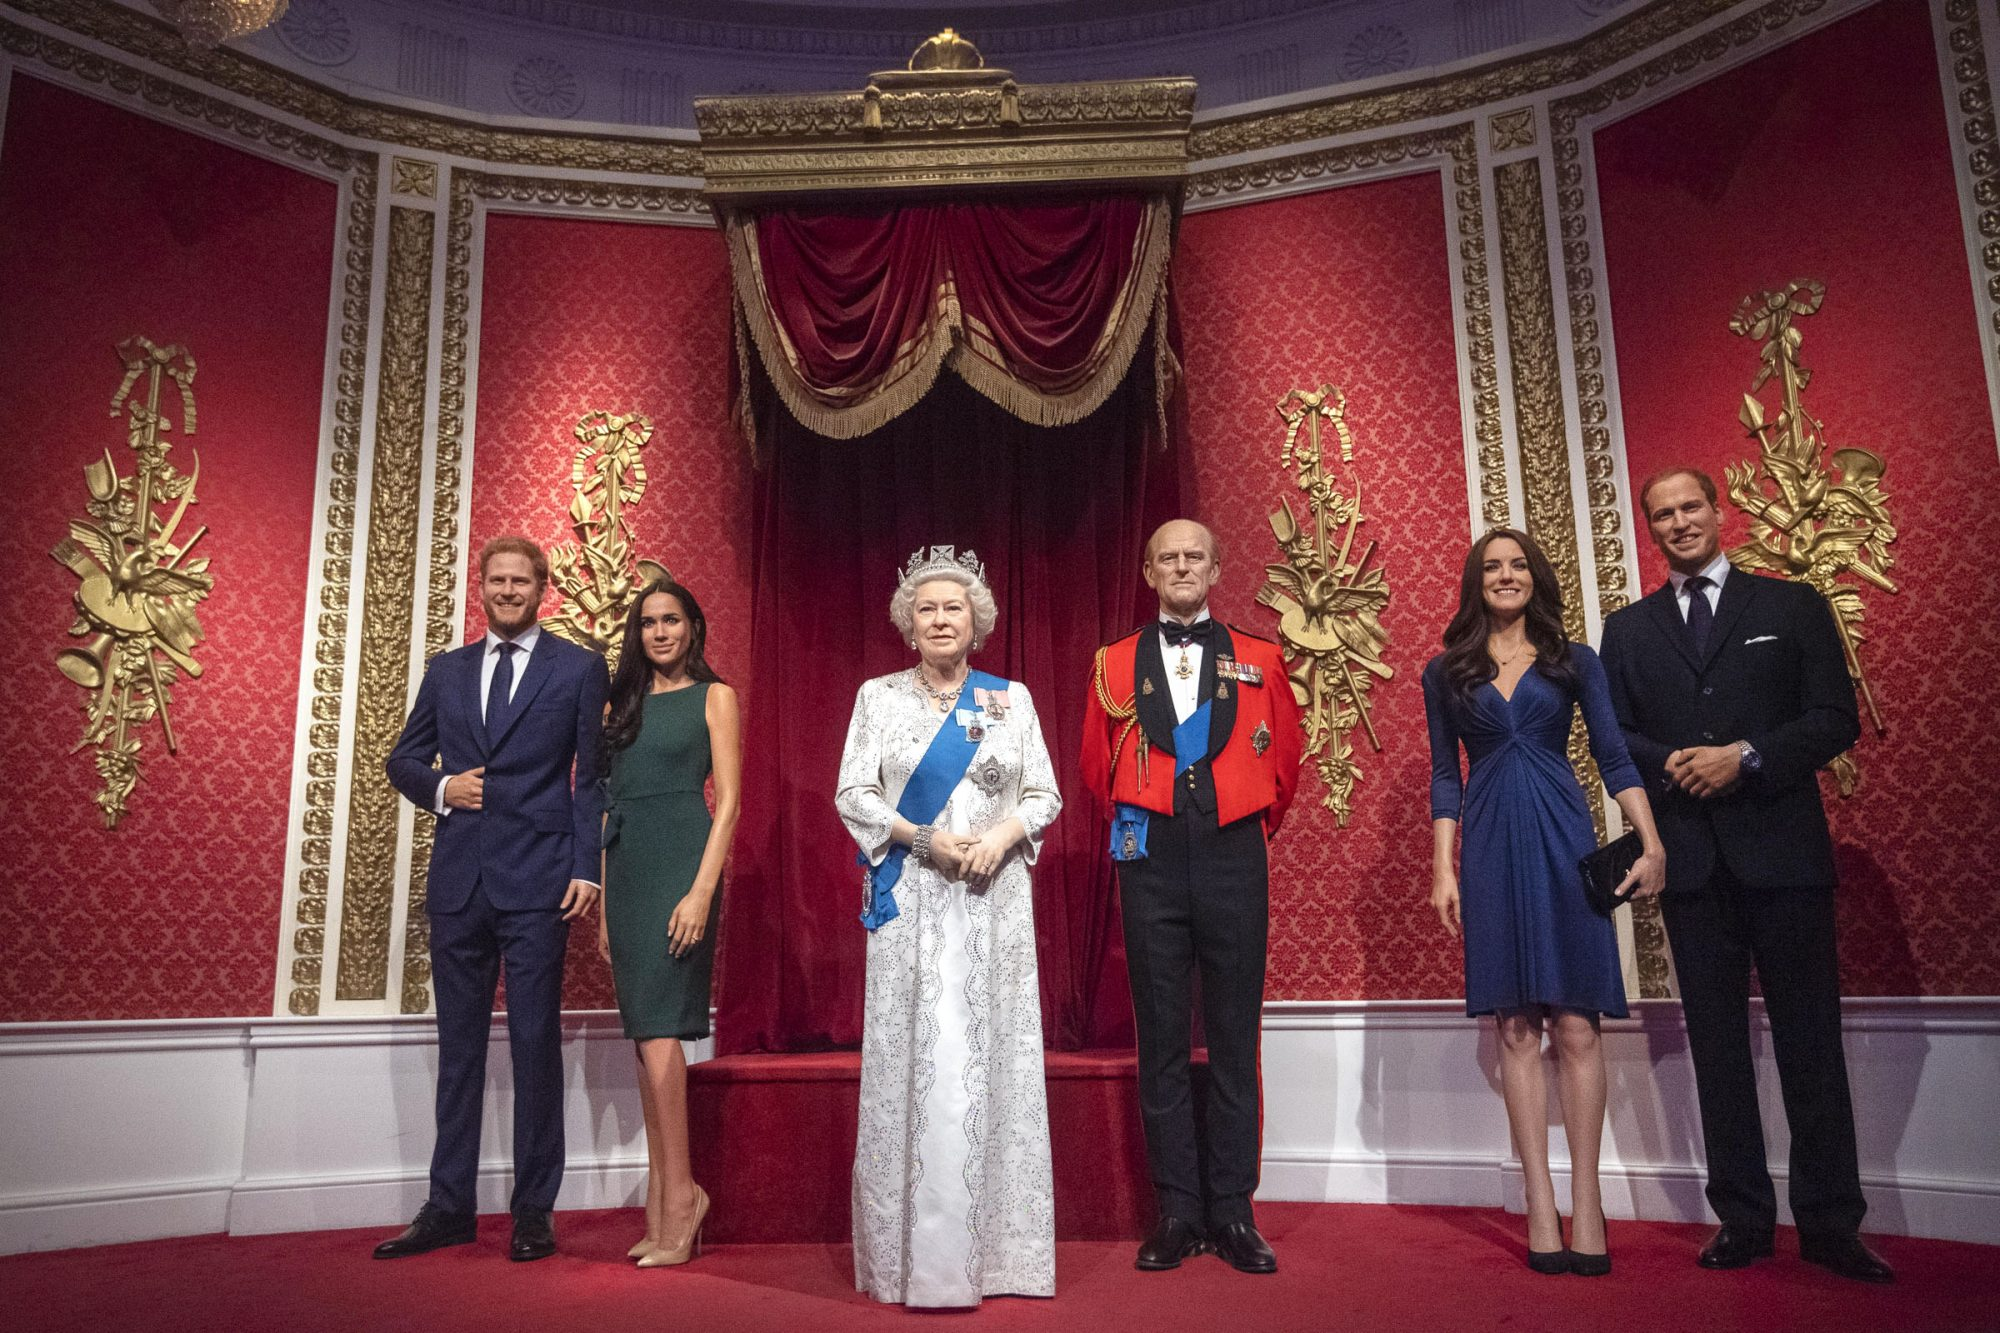 The figures of the Duke and Duchess of Sussex in their original positions next to Queen Elizabeth II, the Duke of Edinburgh, and the Duke and Duchess of Cambridg